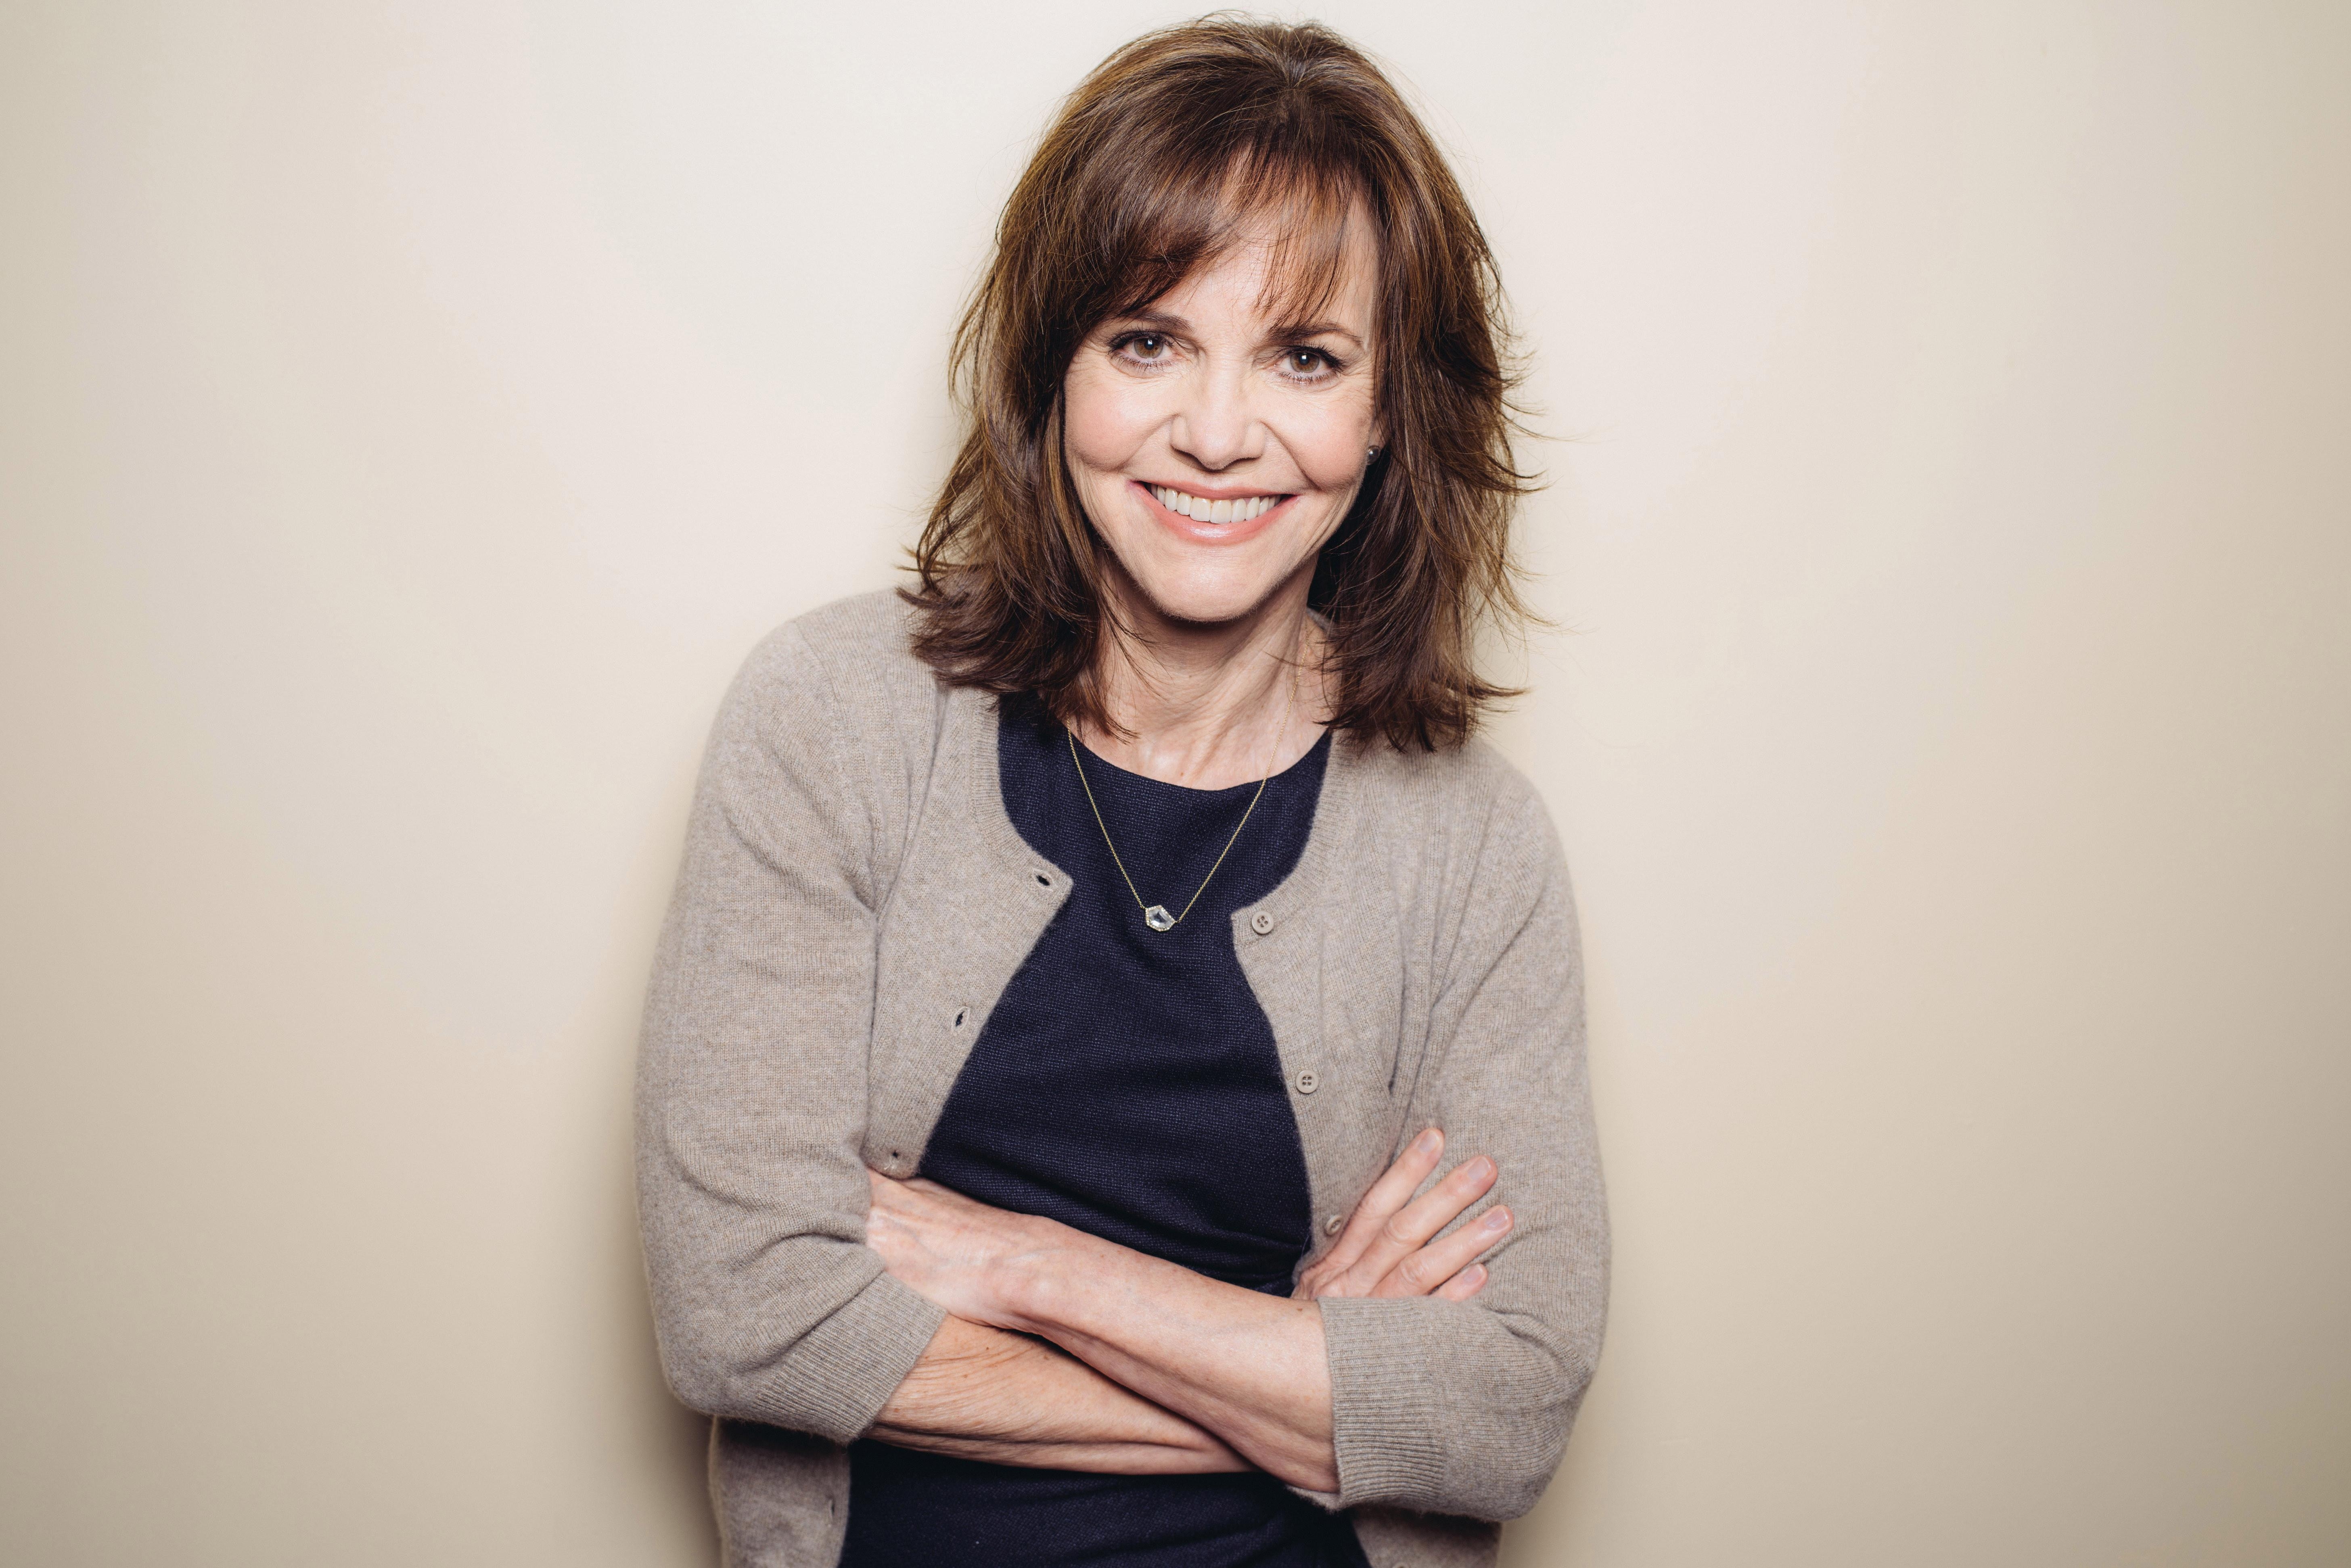 Patti Cohoon Sally Fields HD Wallpapers – Home design